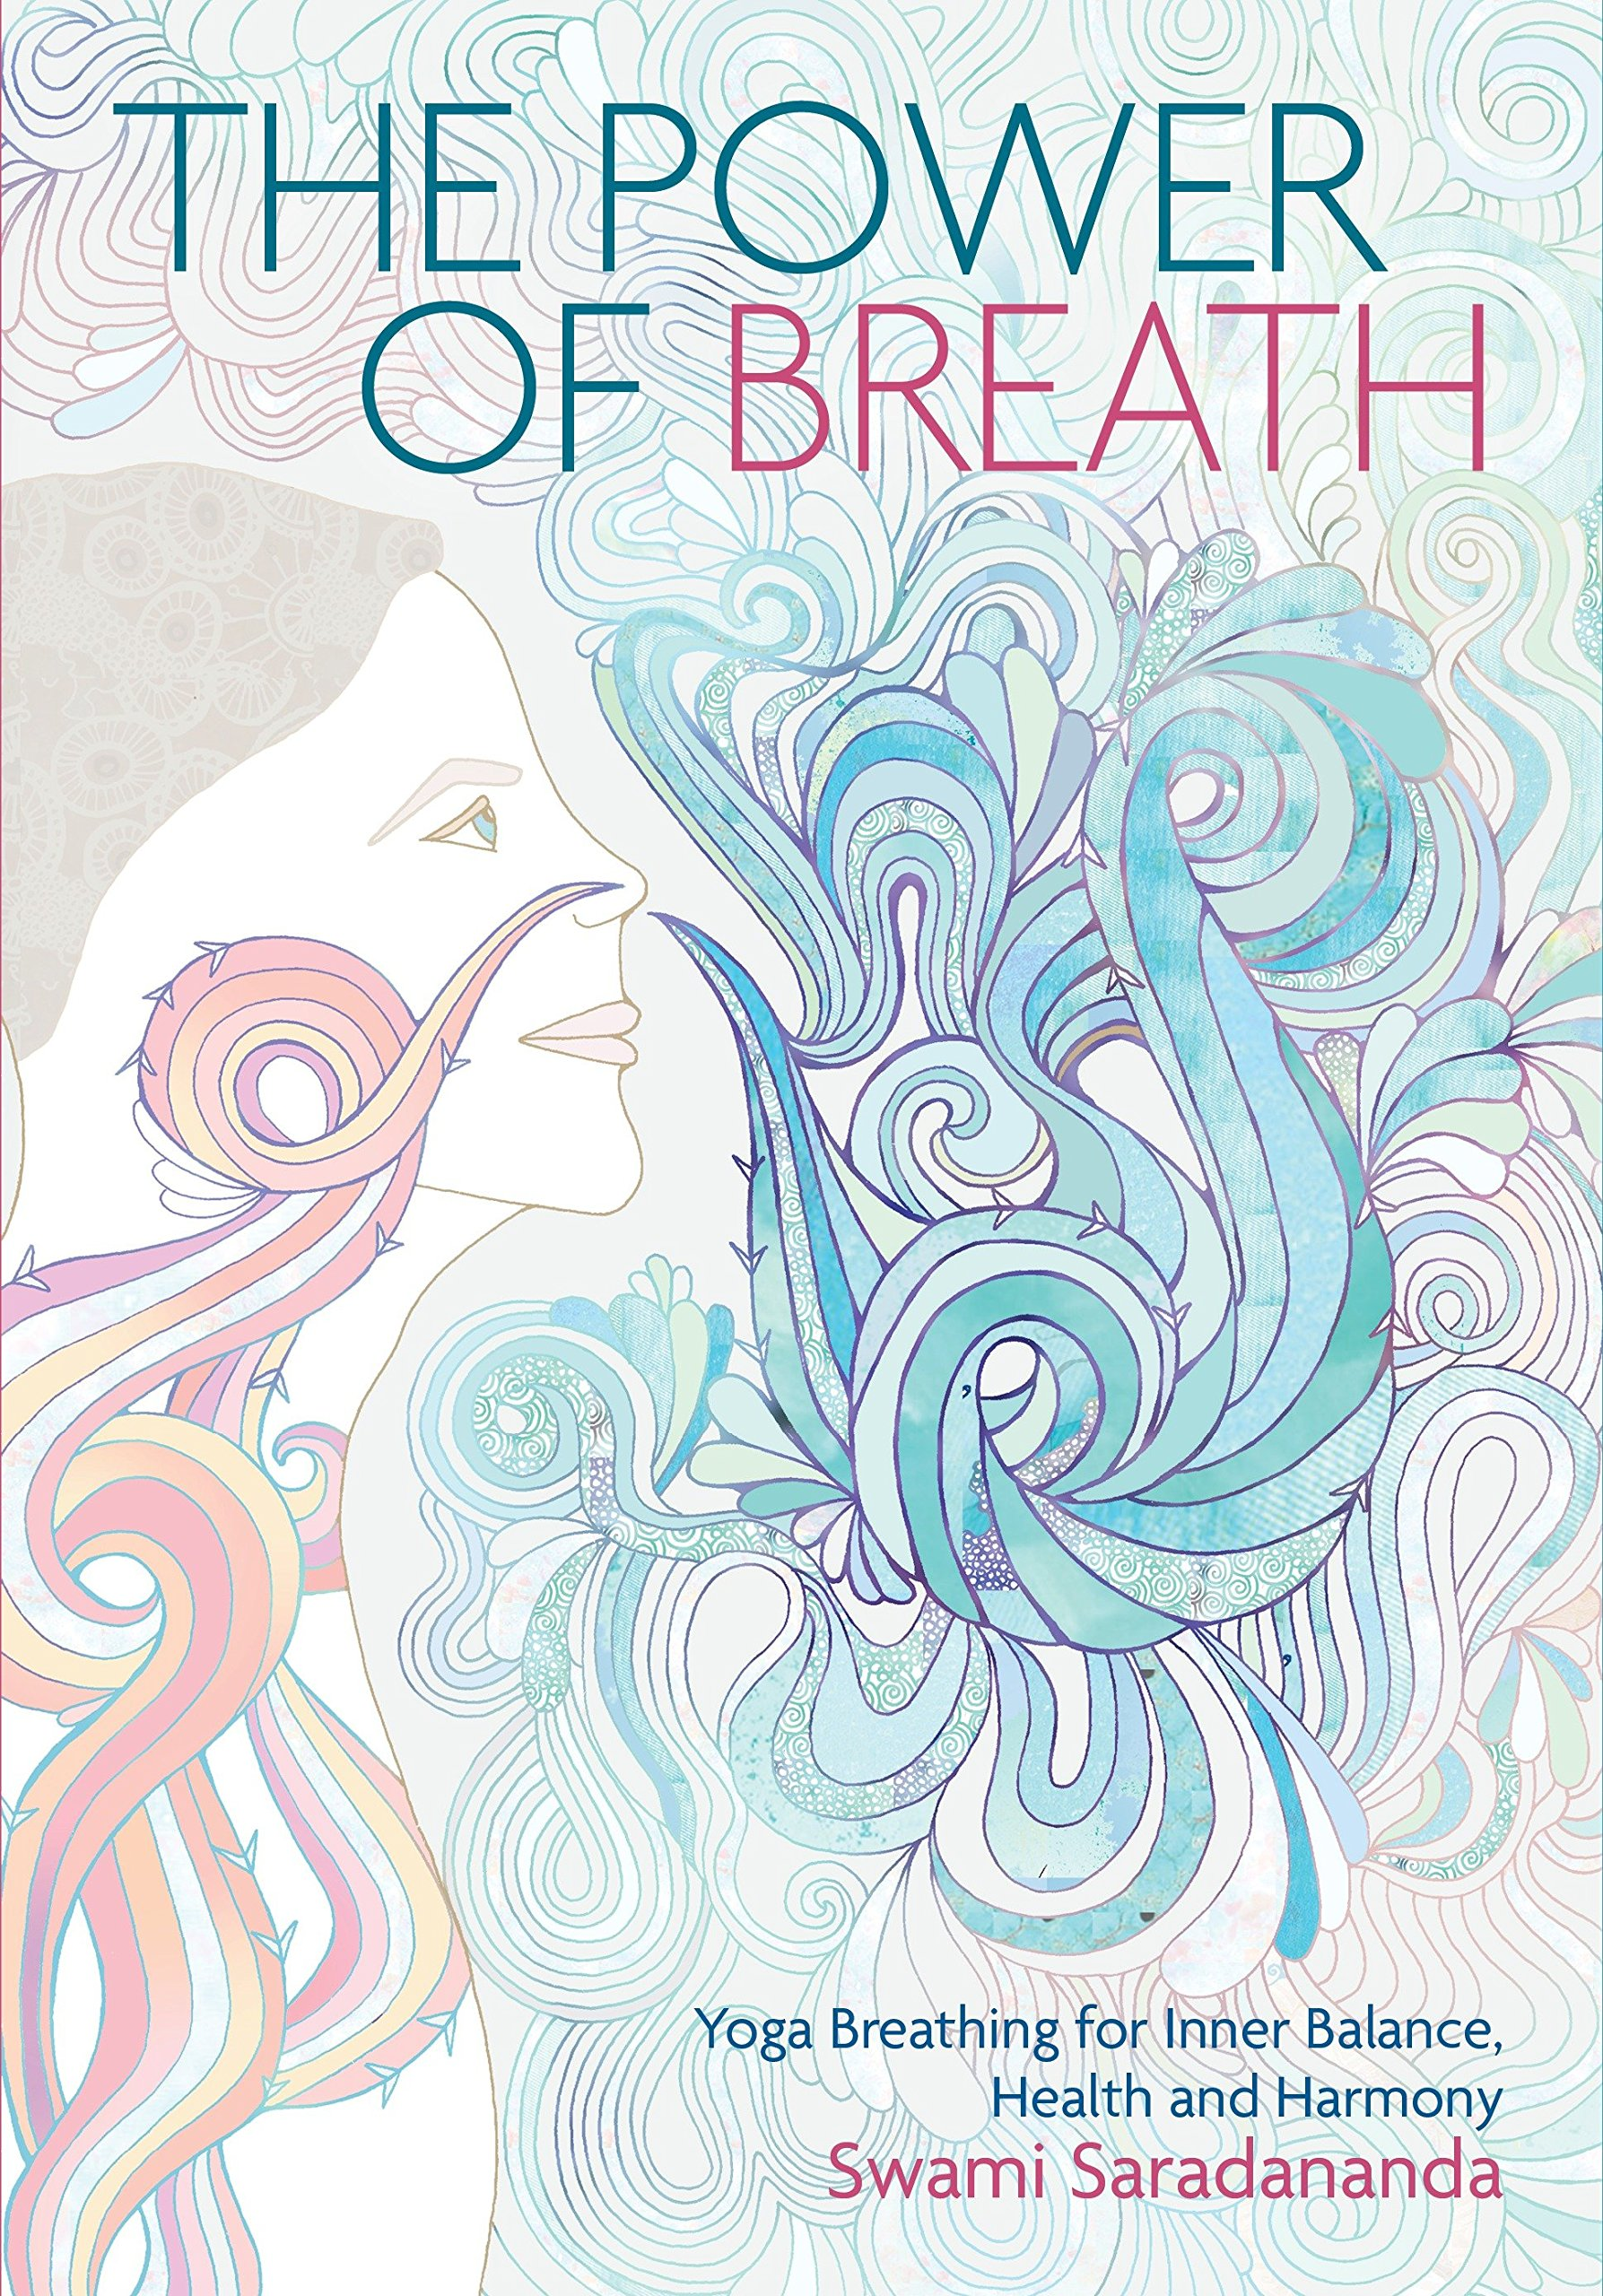 Download The Power of Breath: The Art of Breathing Well for Harmony, Happiness and Health ebook